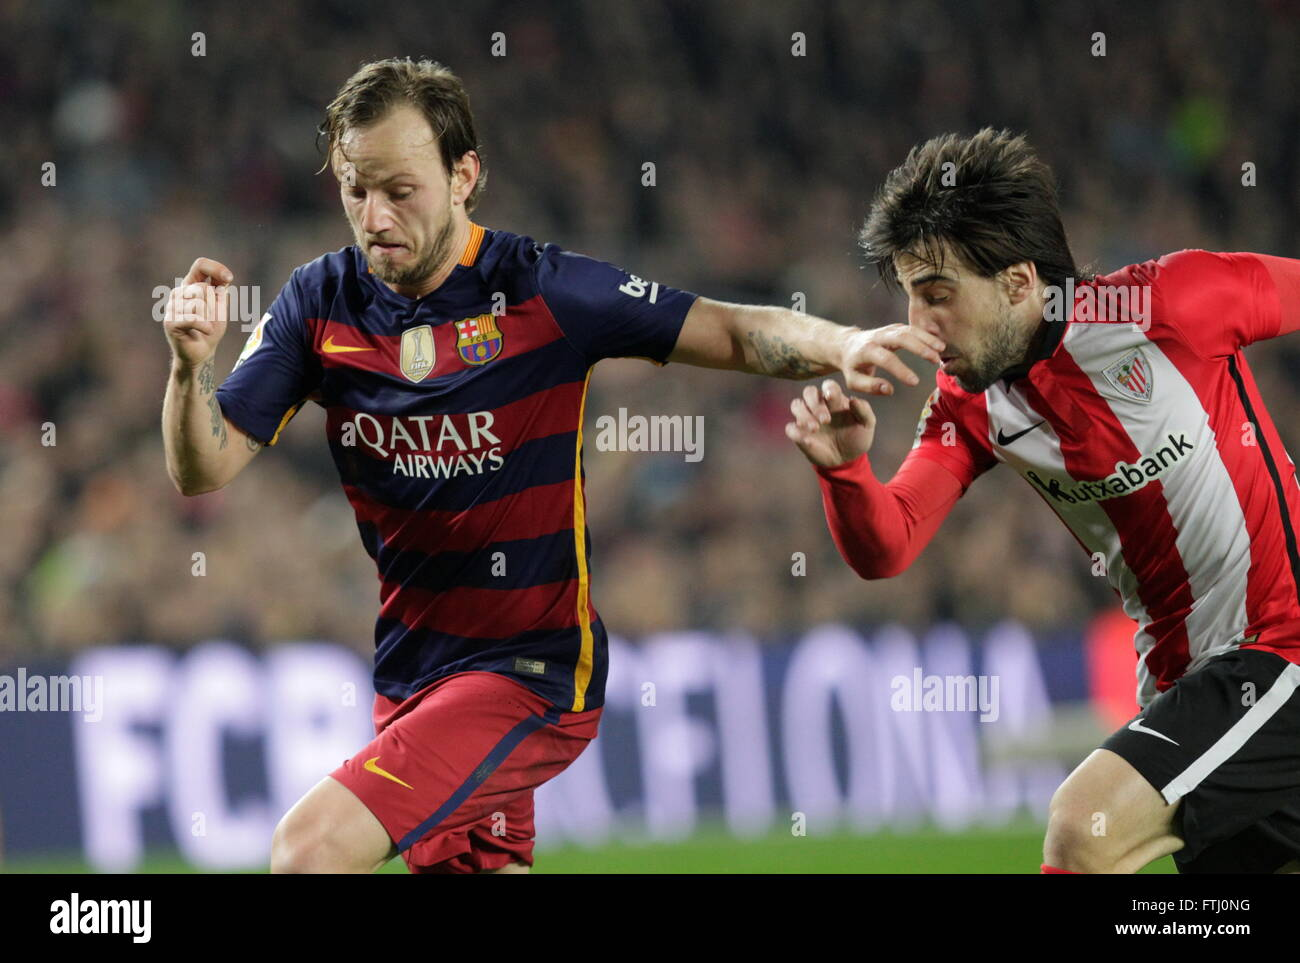 Barcelona, Spain, January 27, 2016: King Cup Ivan Rakitic actio during the match between FC Barcelona - Atlético - Stock Image